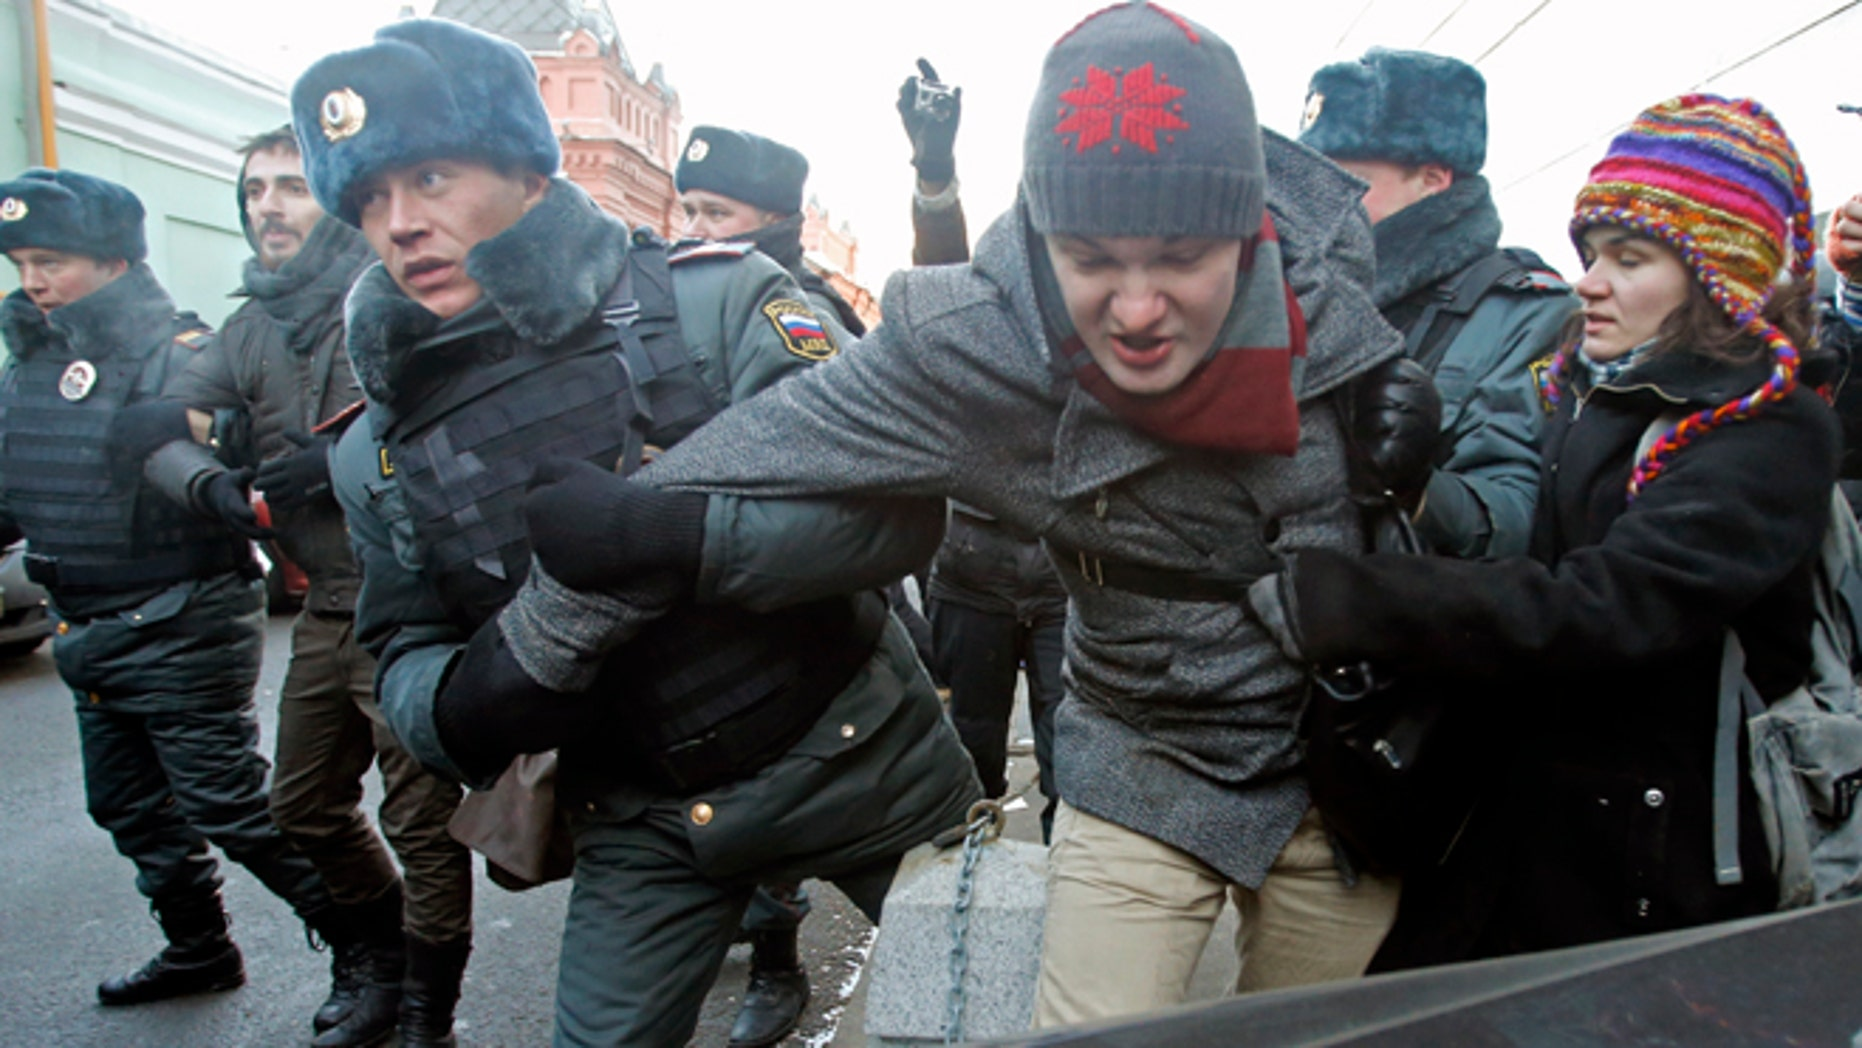 Dec. 19, 2012: In this Wednesday file photo police officers detain gay right activists during a protest near the State Duma, Russia's lower house of parliament, in Moscow, Russia.